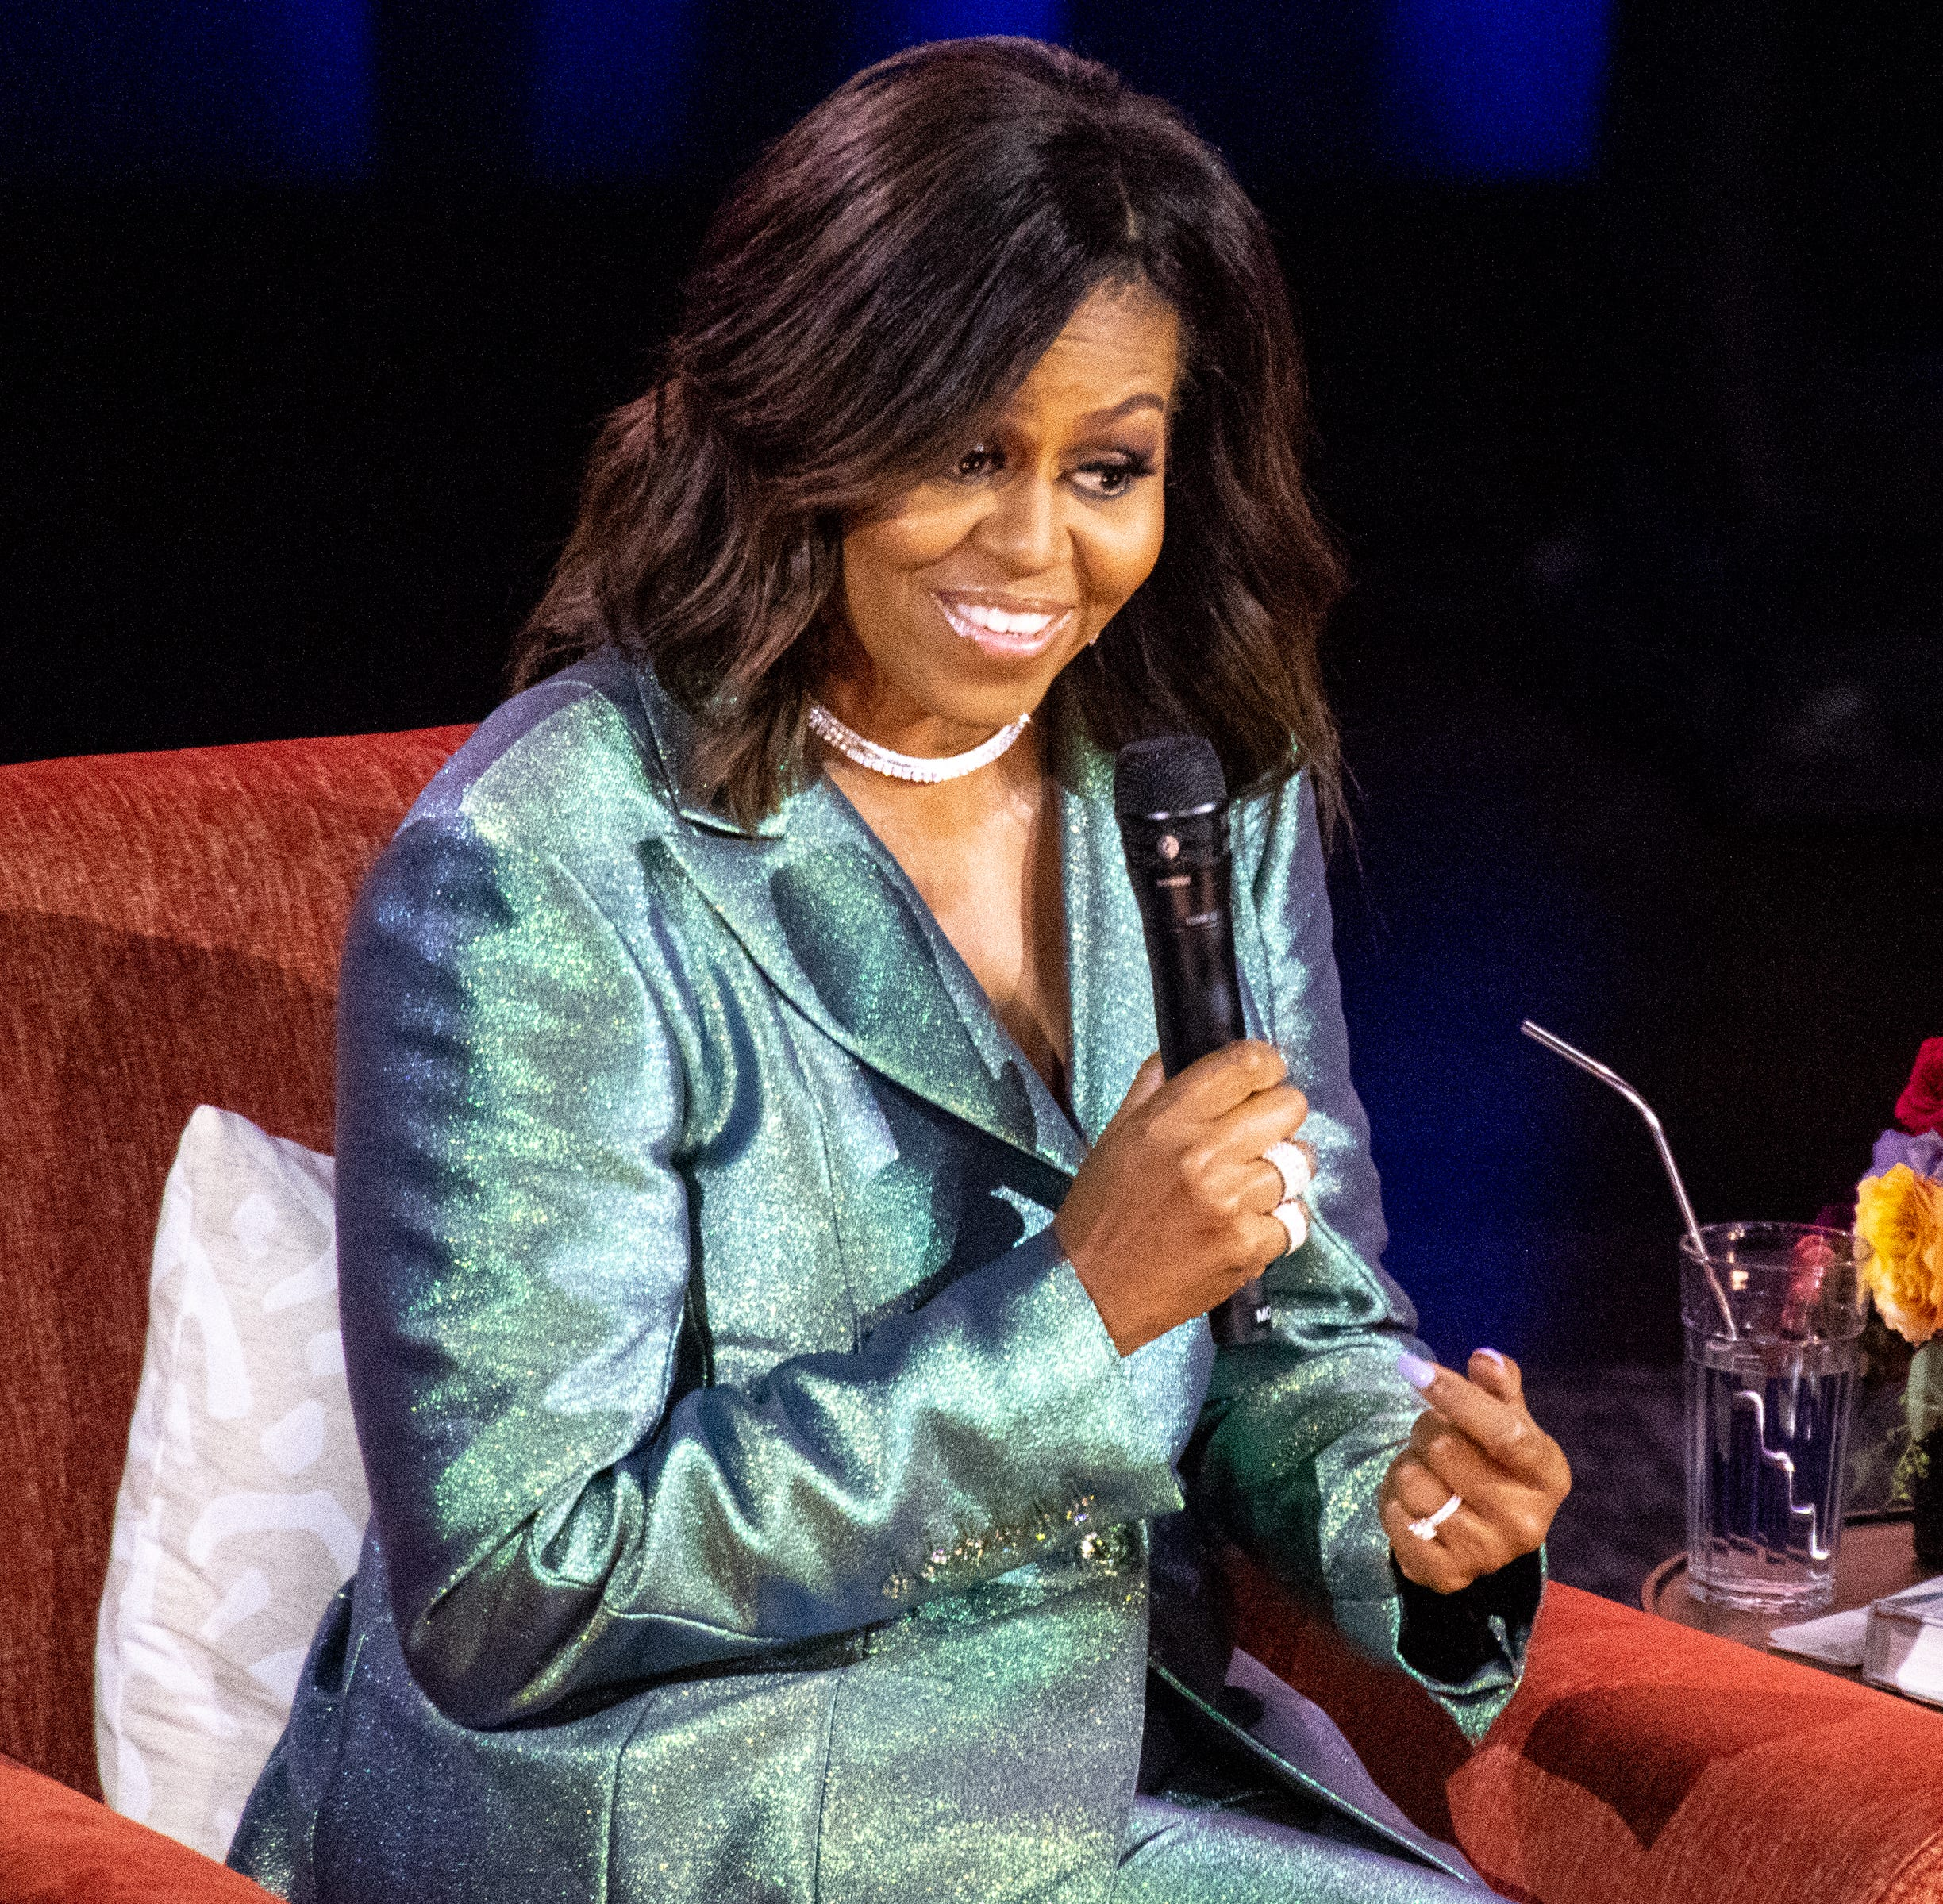 Michelle Obama tells Ryman audience about her last day as first lady and calling out Trump